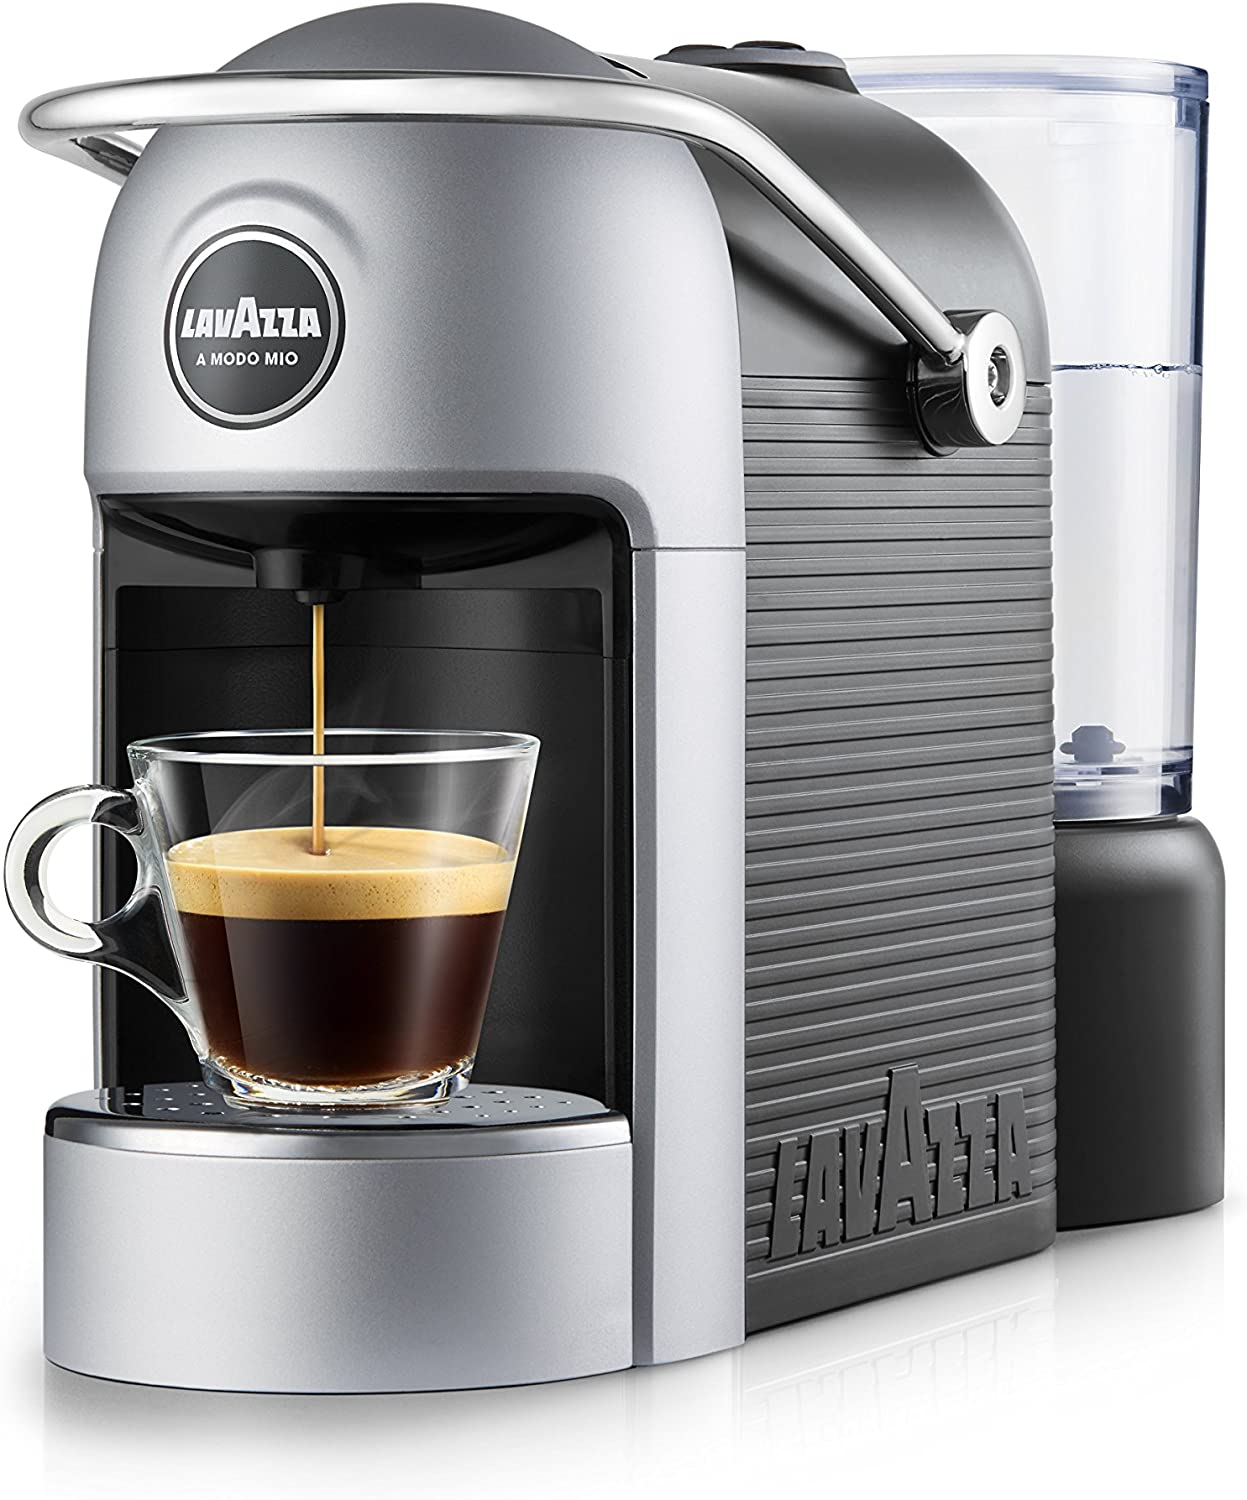 Lavazza - Cafetera Jolie Plus, 1250 W, color plata: Amazon.es: Hogar